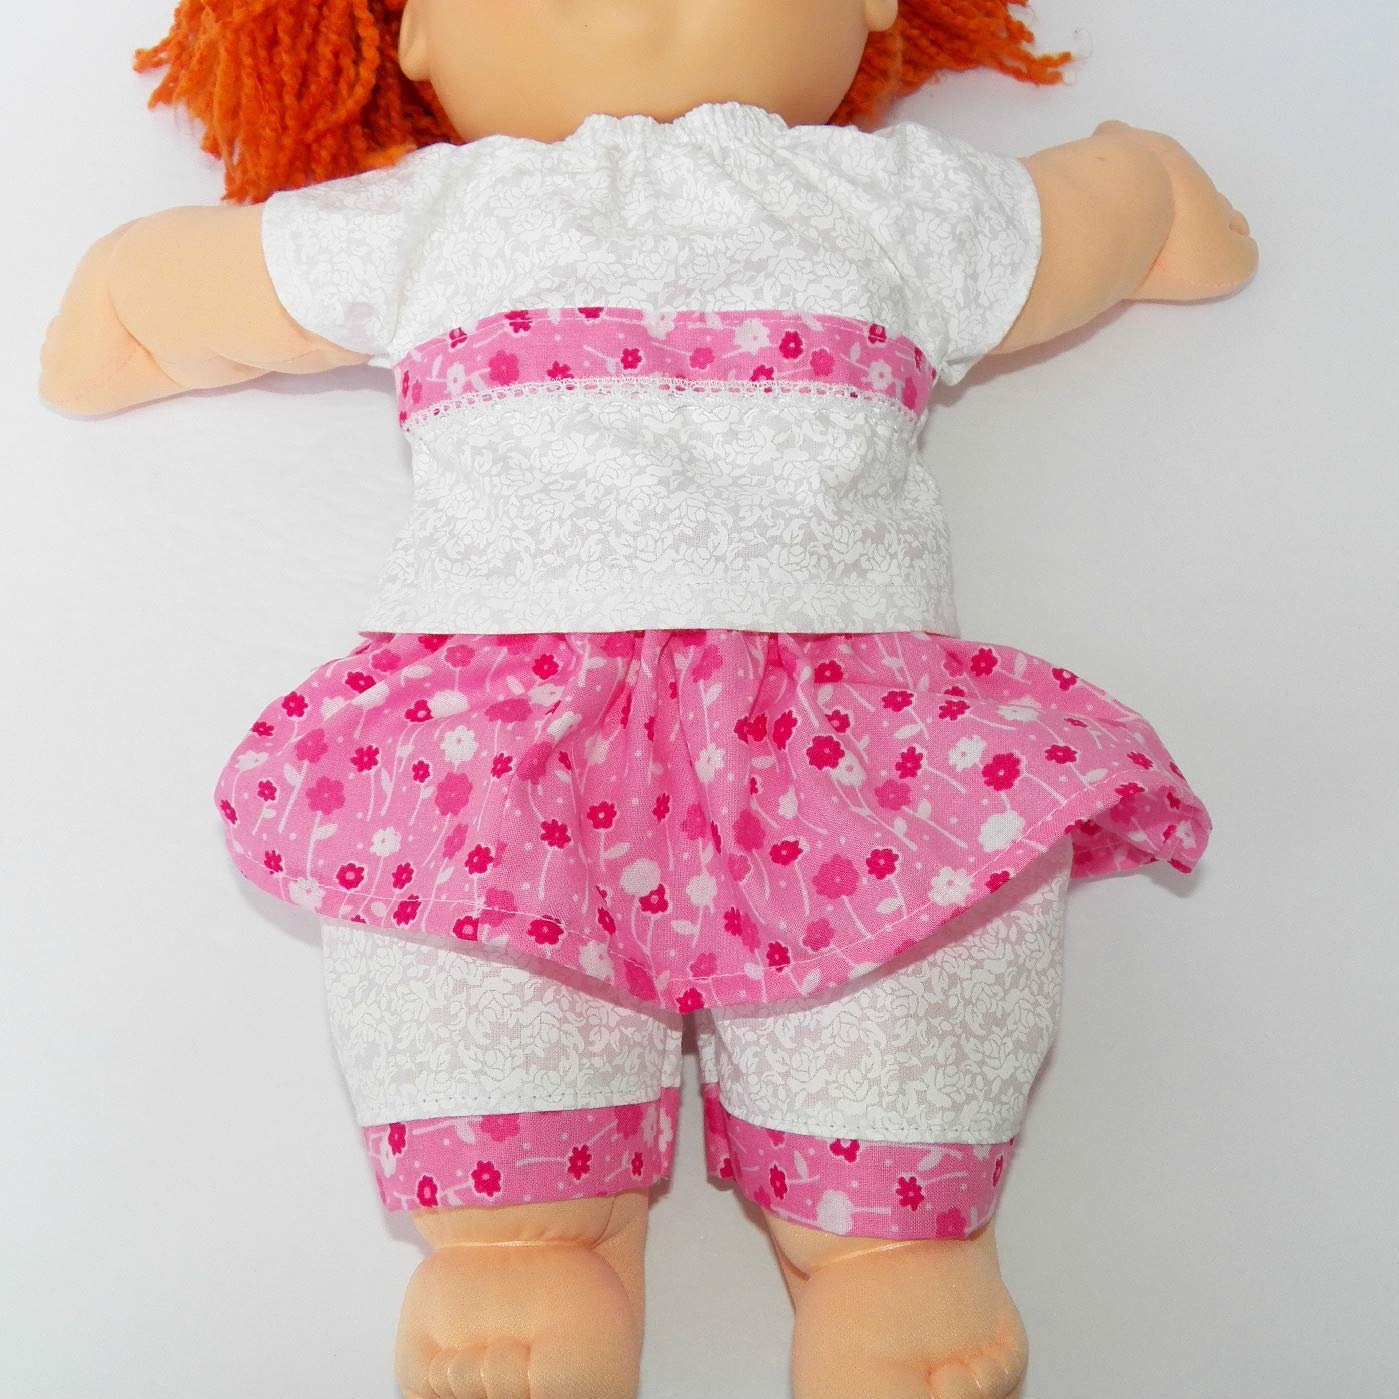 Cabbage Patch Doll Clothes Fits 16 Inch Girl Includes Blouse Skirt Pants White Pink No Doll